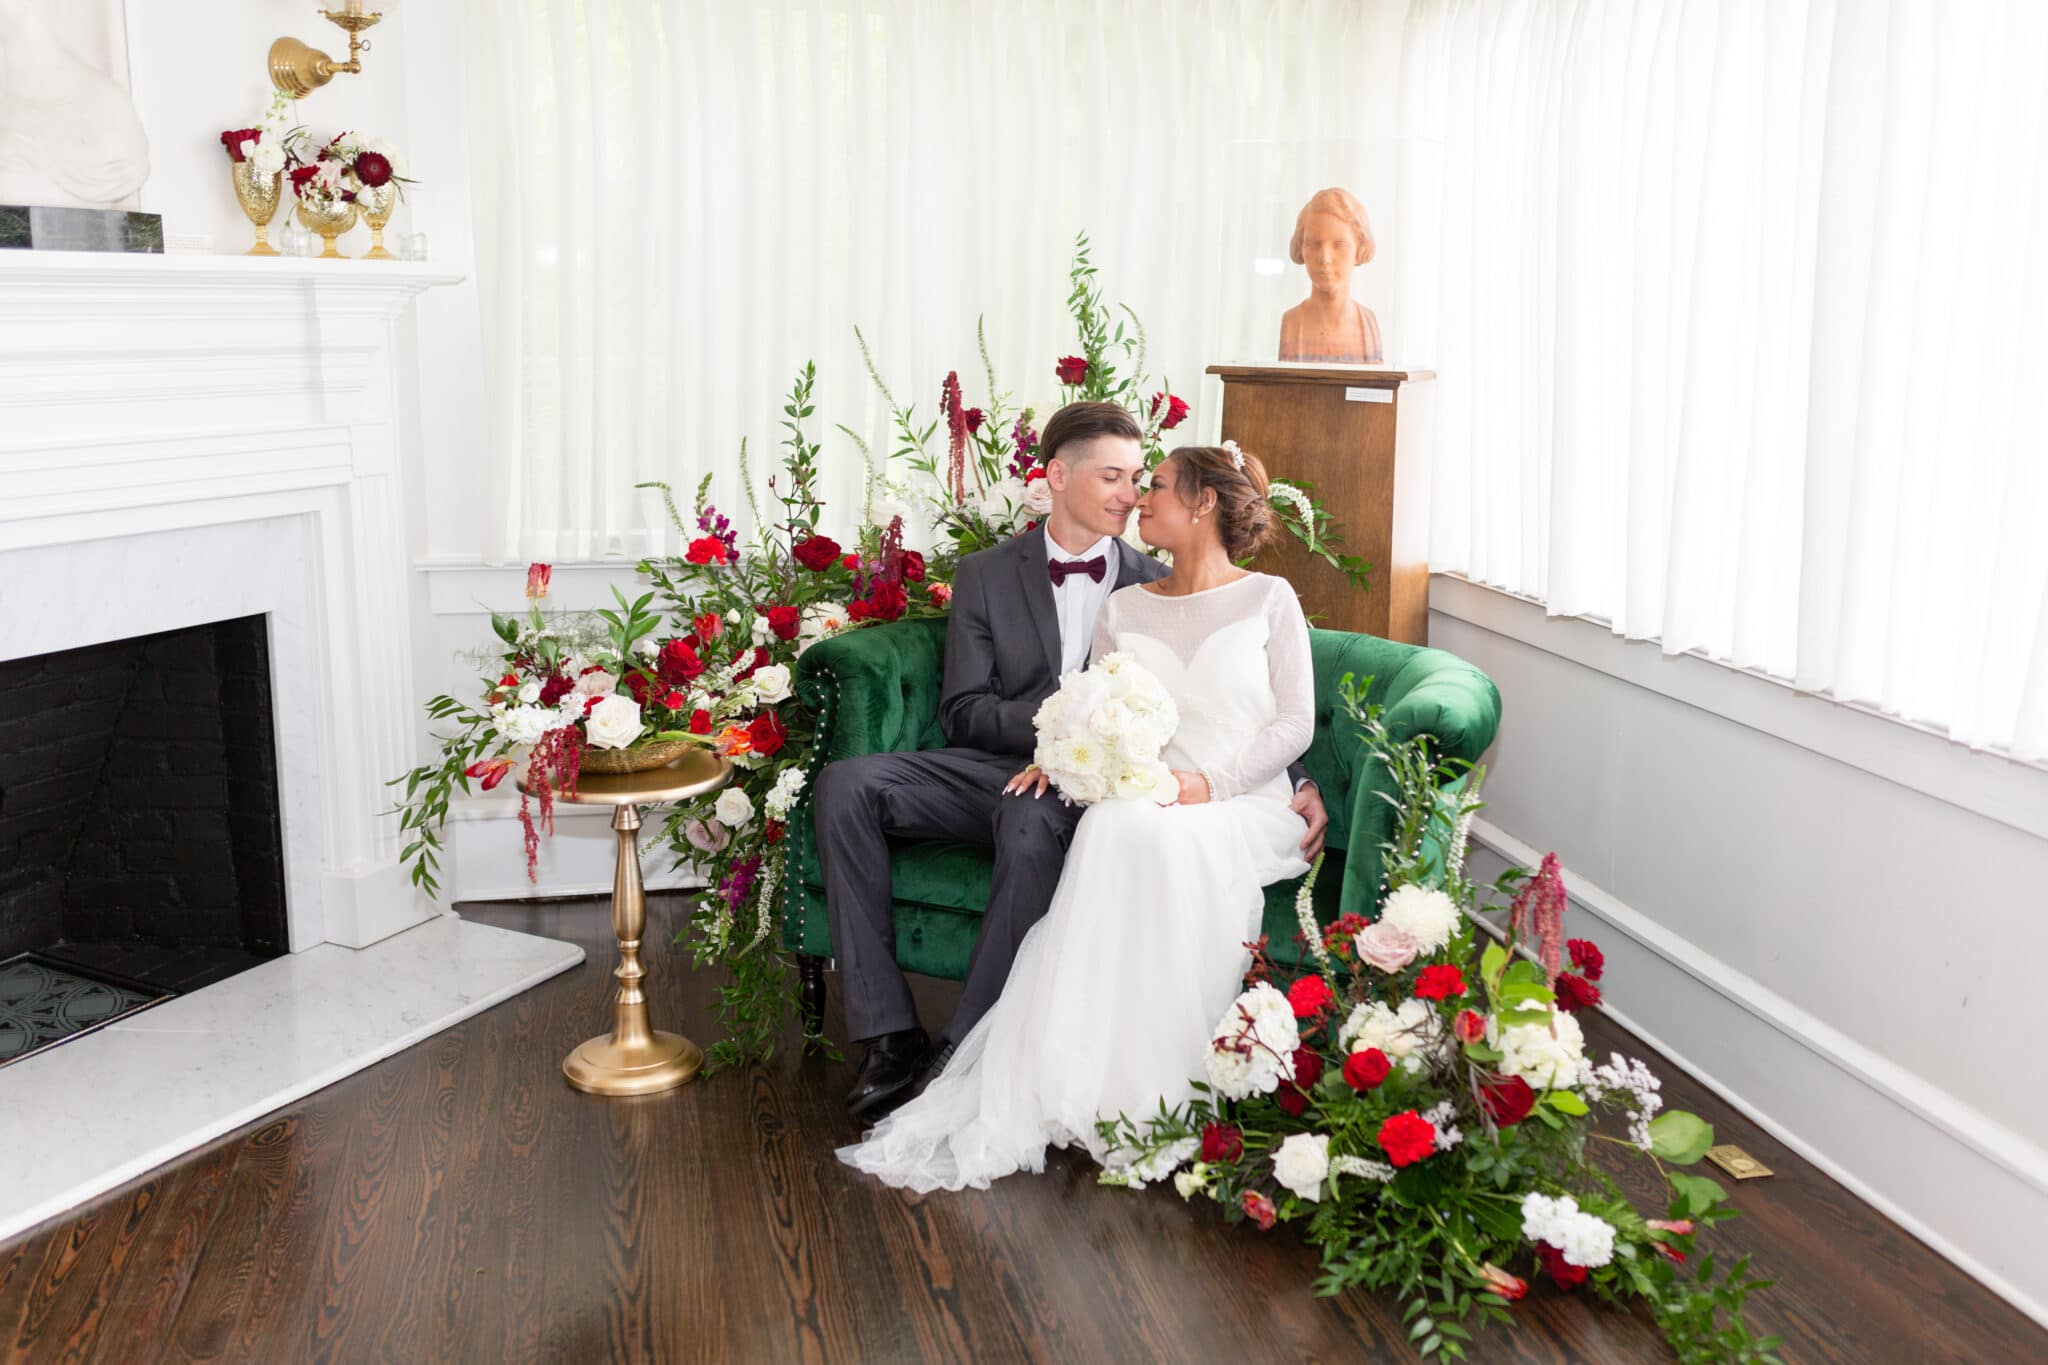 Christmas themed wedding inspiration green velvet sofa surrounded by Christmas florals